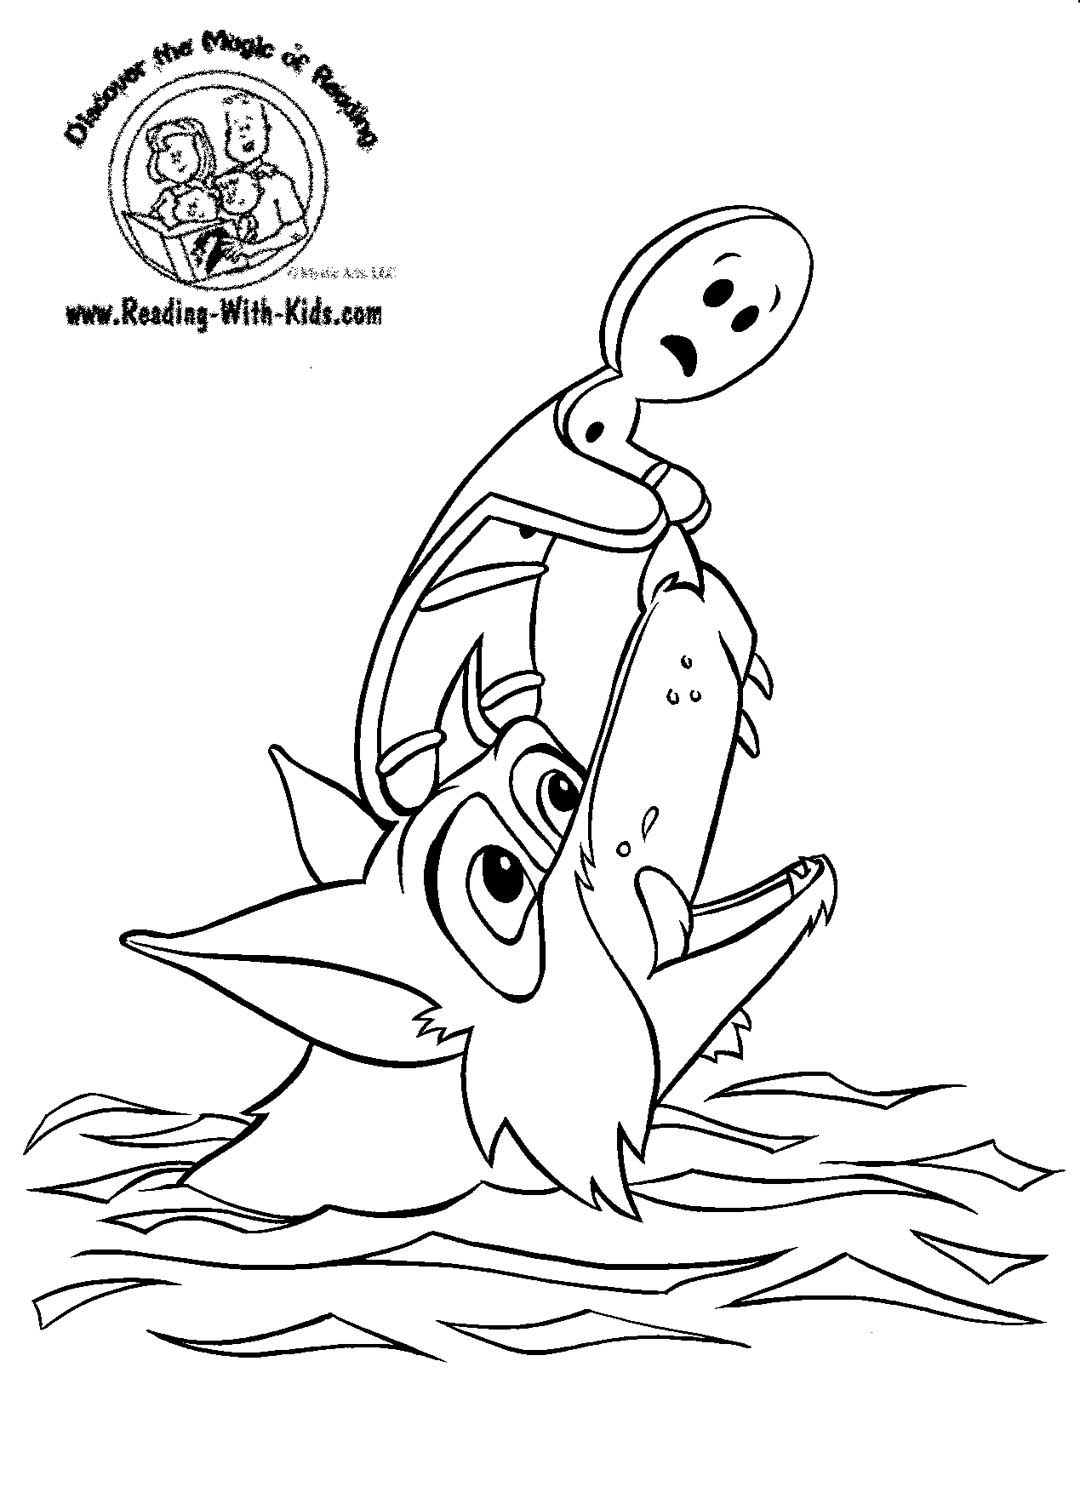 Gingerbread Man Coloring Sheet #FairyTale #FairyTales | Toddler ...